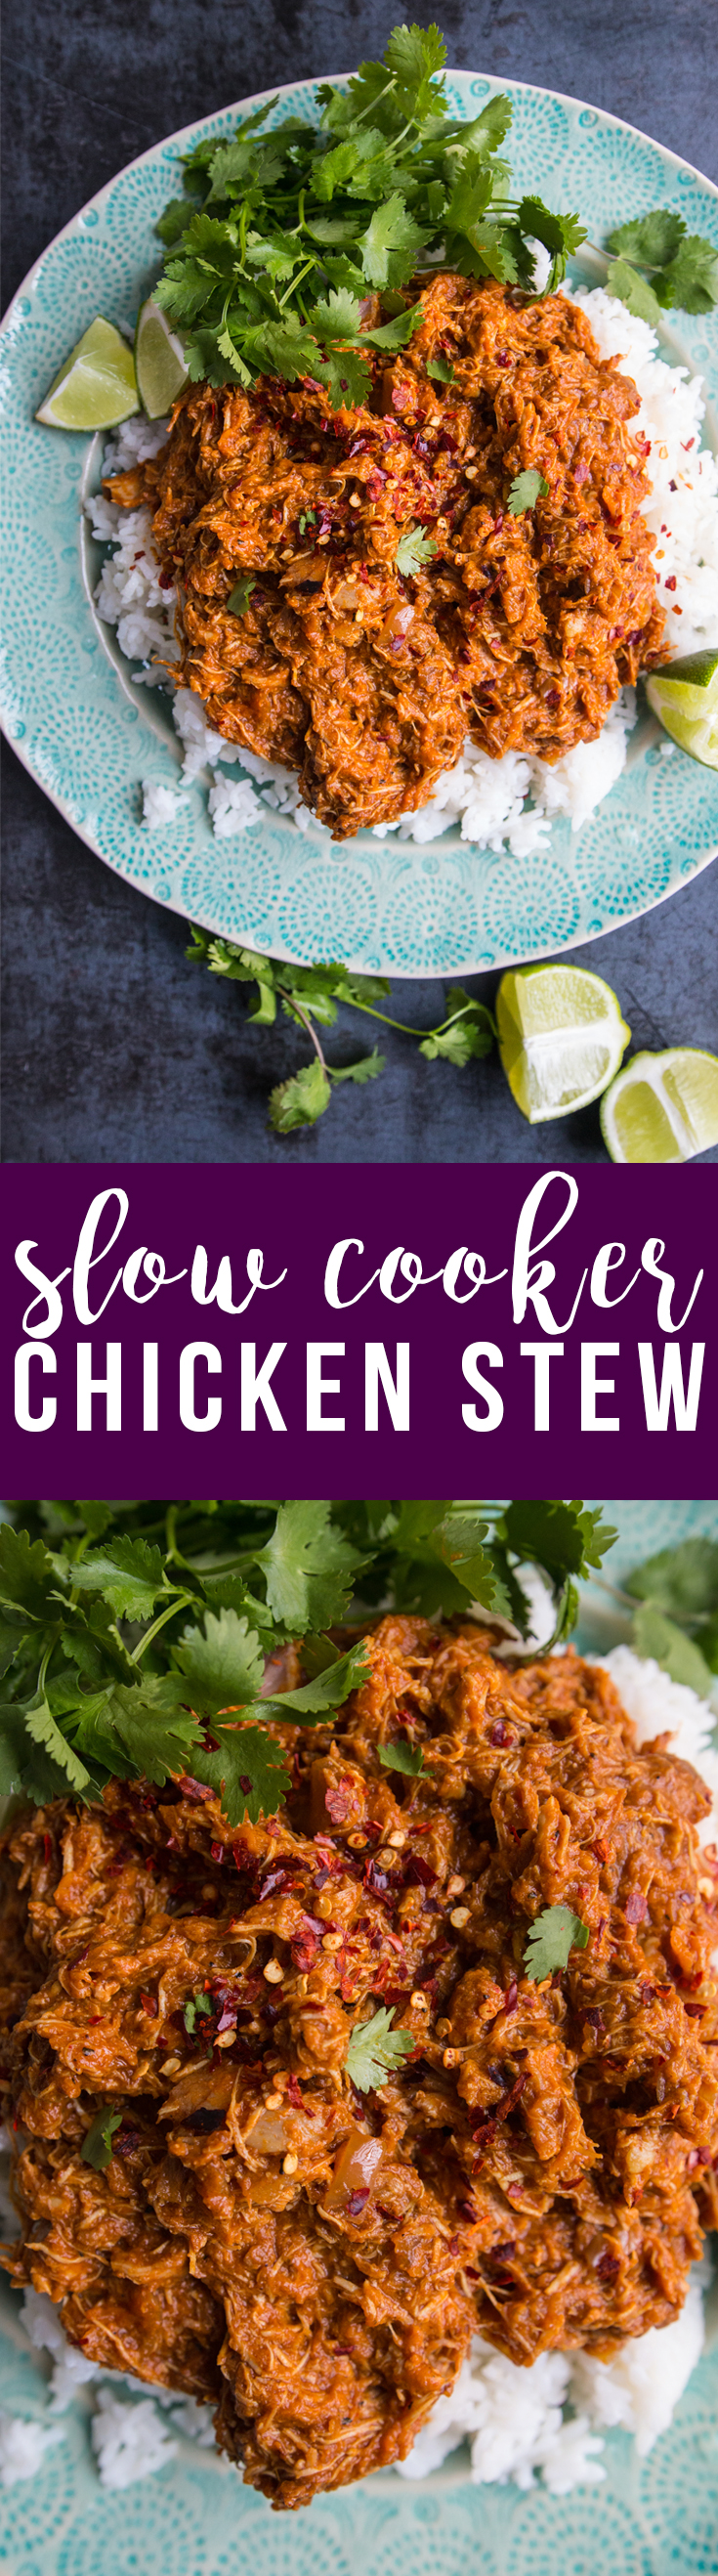 This slow cooker curried chicken stew uses simple ingredients and a hands-off technique to make a thick, savory result that's packed with flavor.